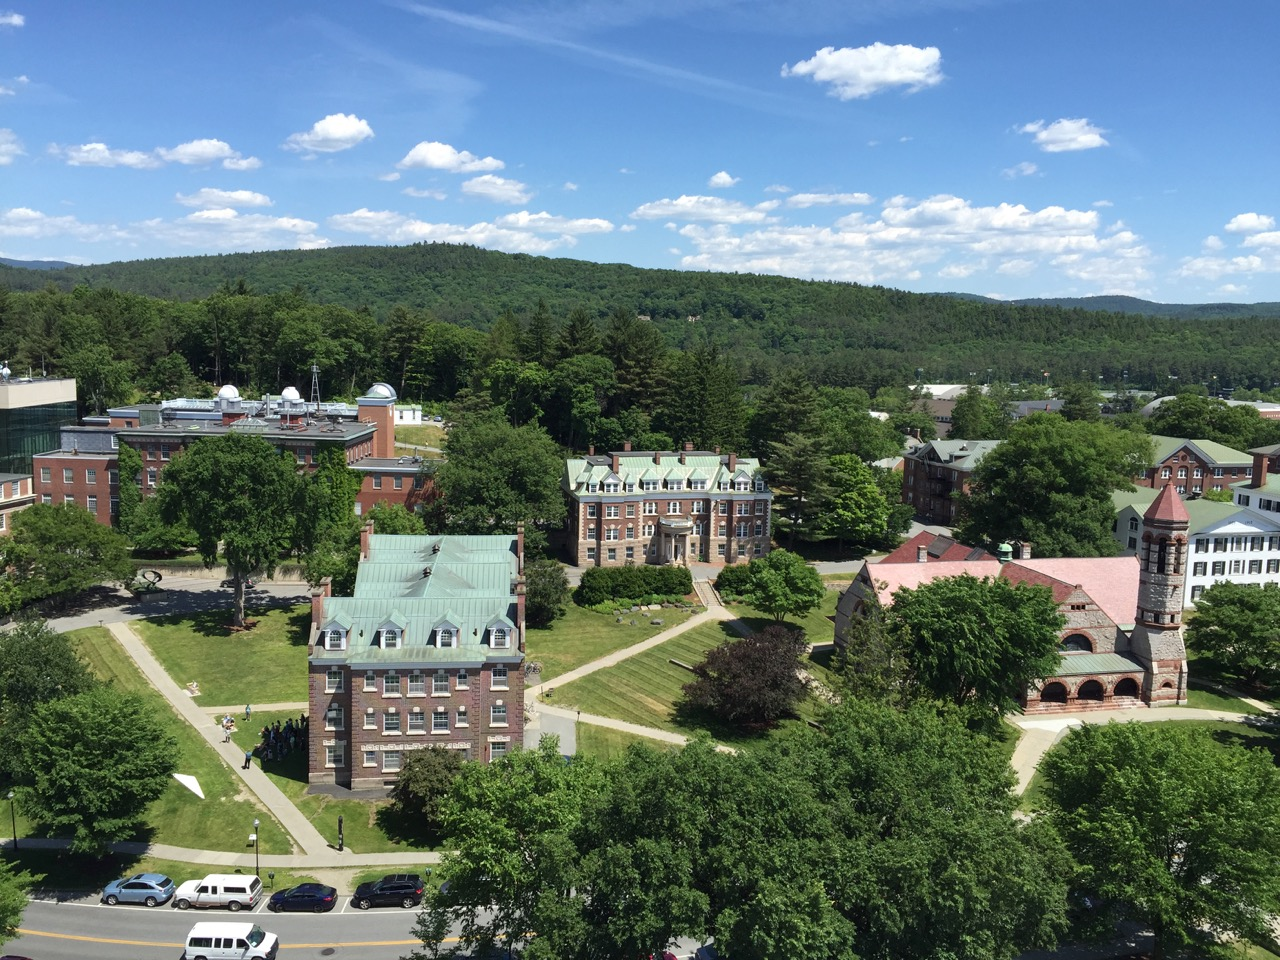 The view from atop Baker Tower, looking out at Wheeler (my freshman dorm) and other buildings on the Dartmouth campus